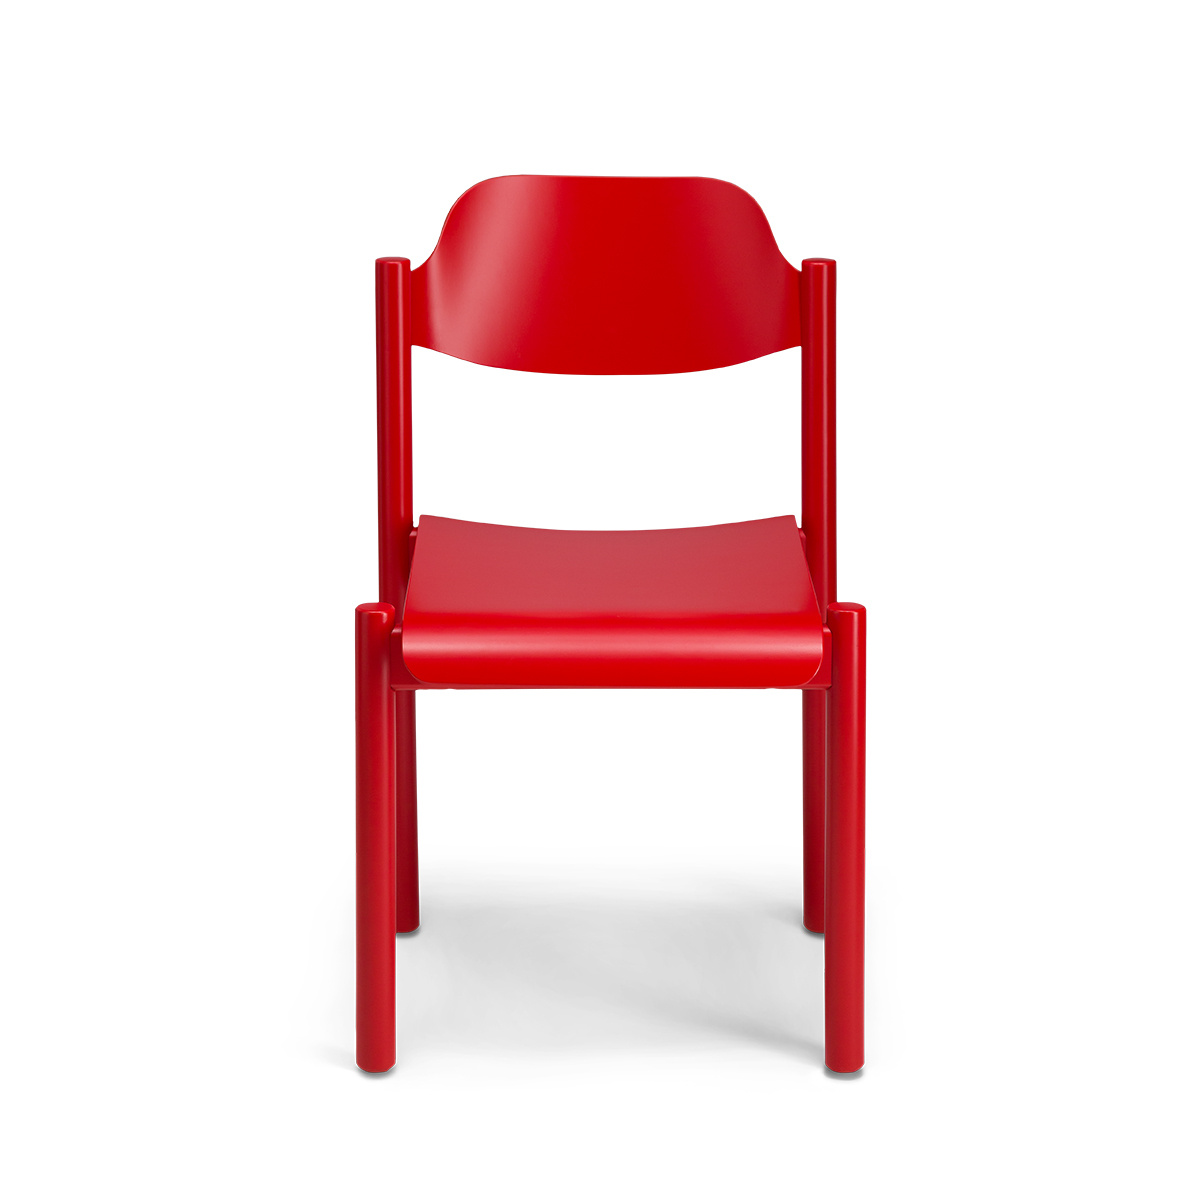 Achille red chair